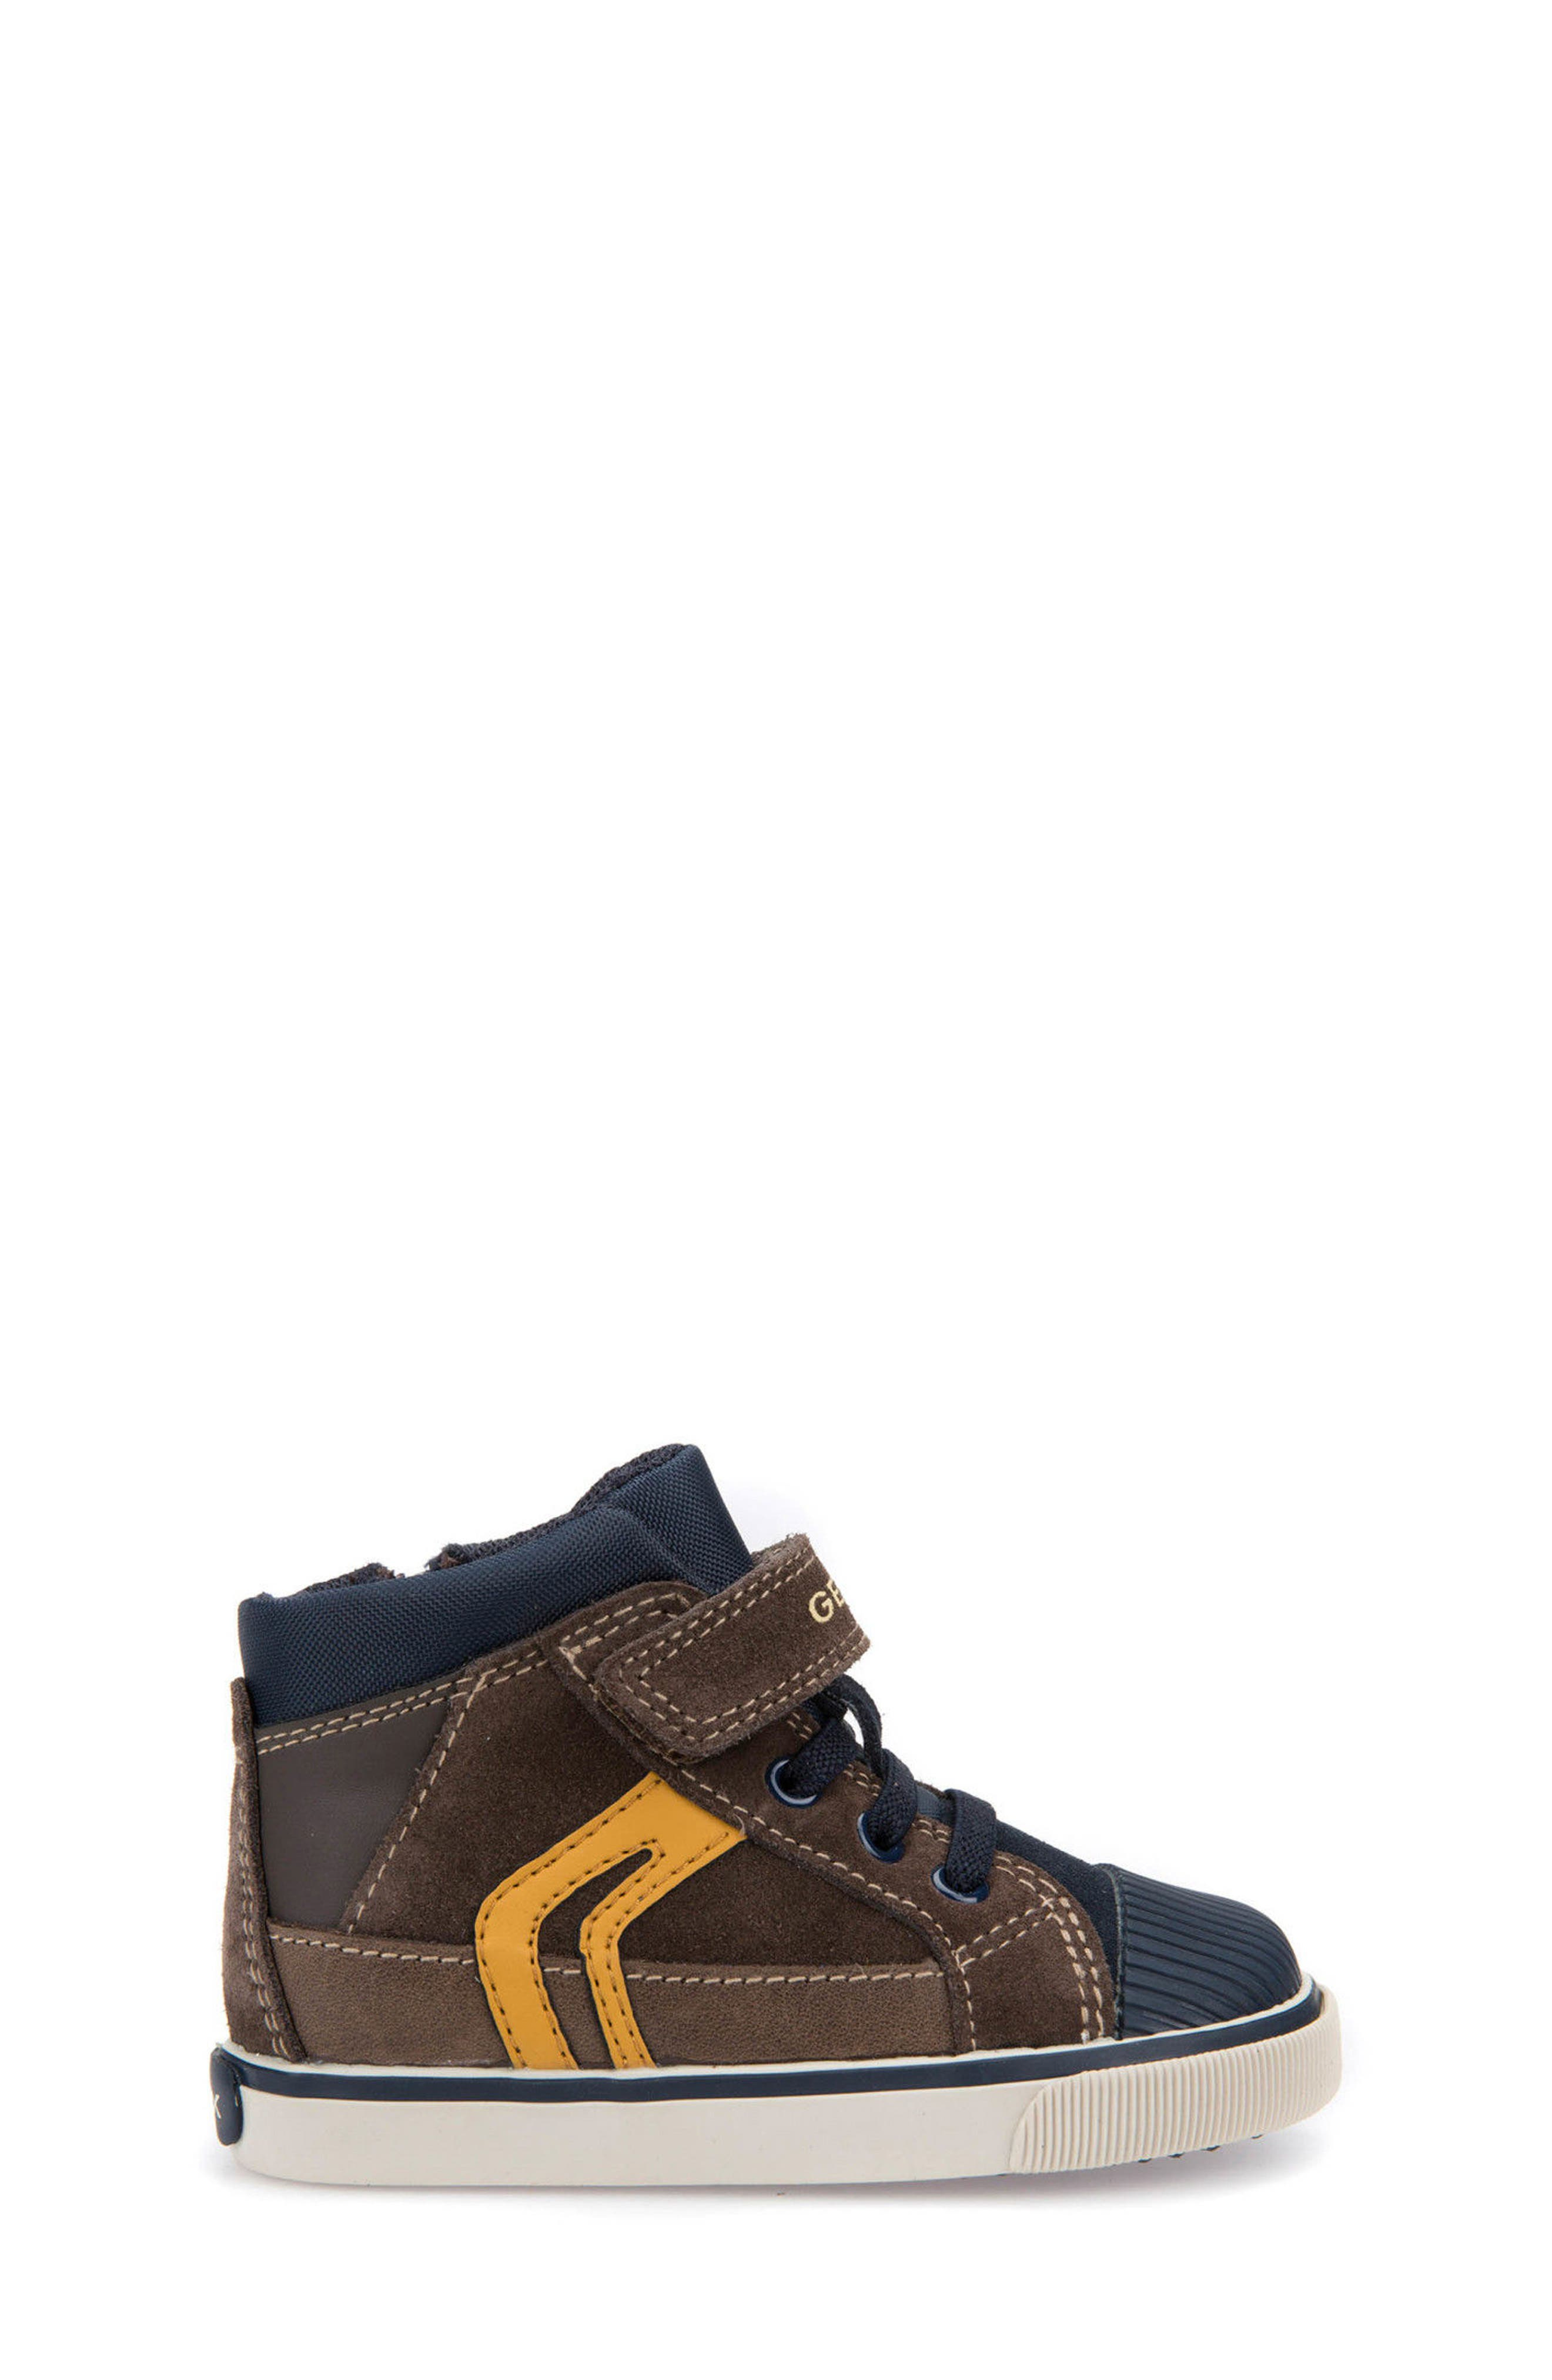 'Kiwi' High Top Sneaker,                             Alternate thumbnail 3, color,                             Chestnut/ Navy